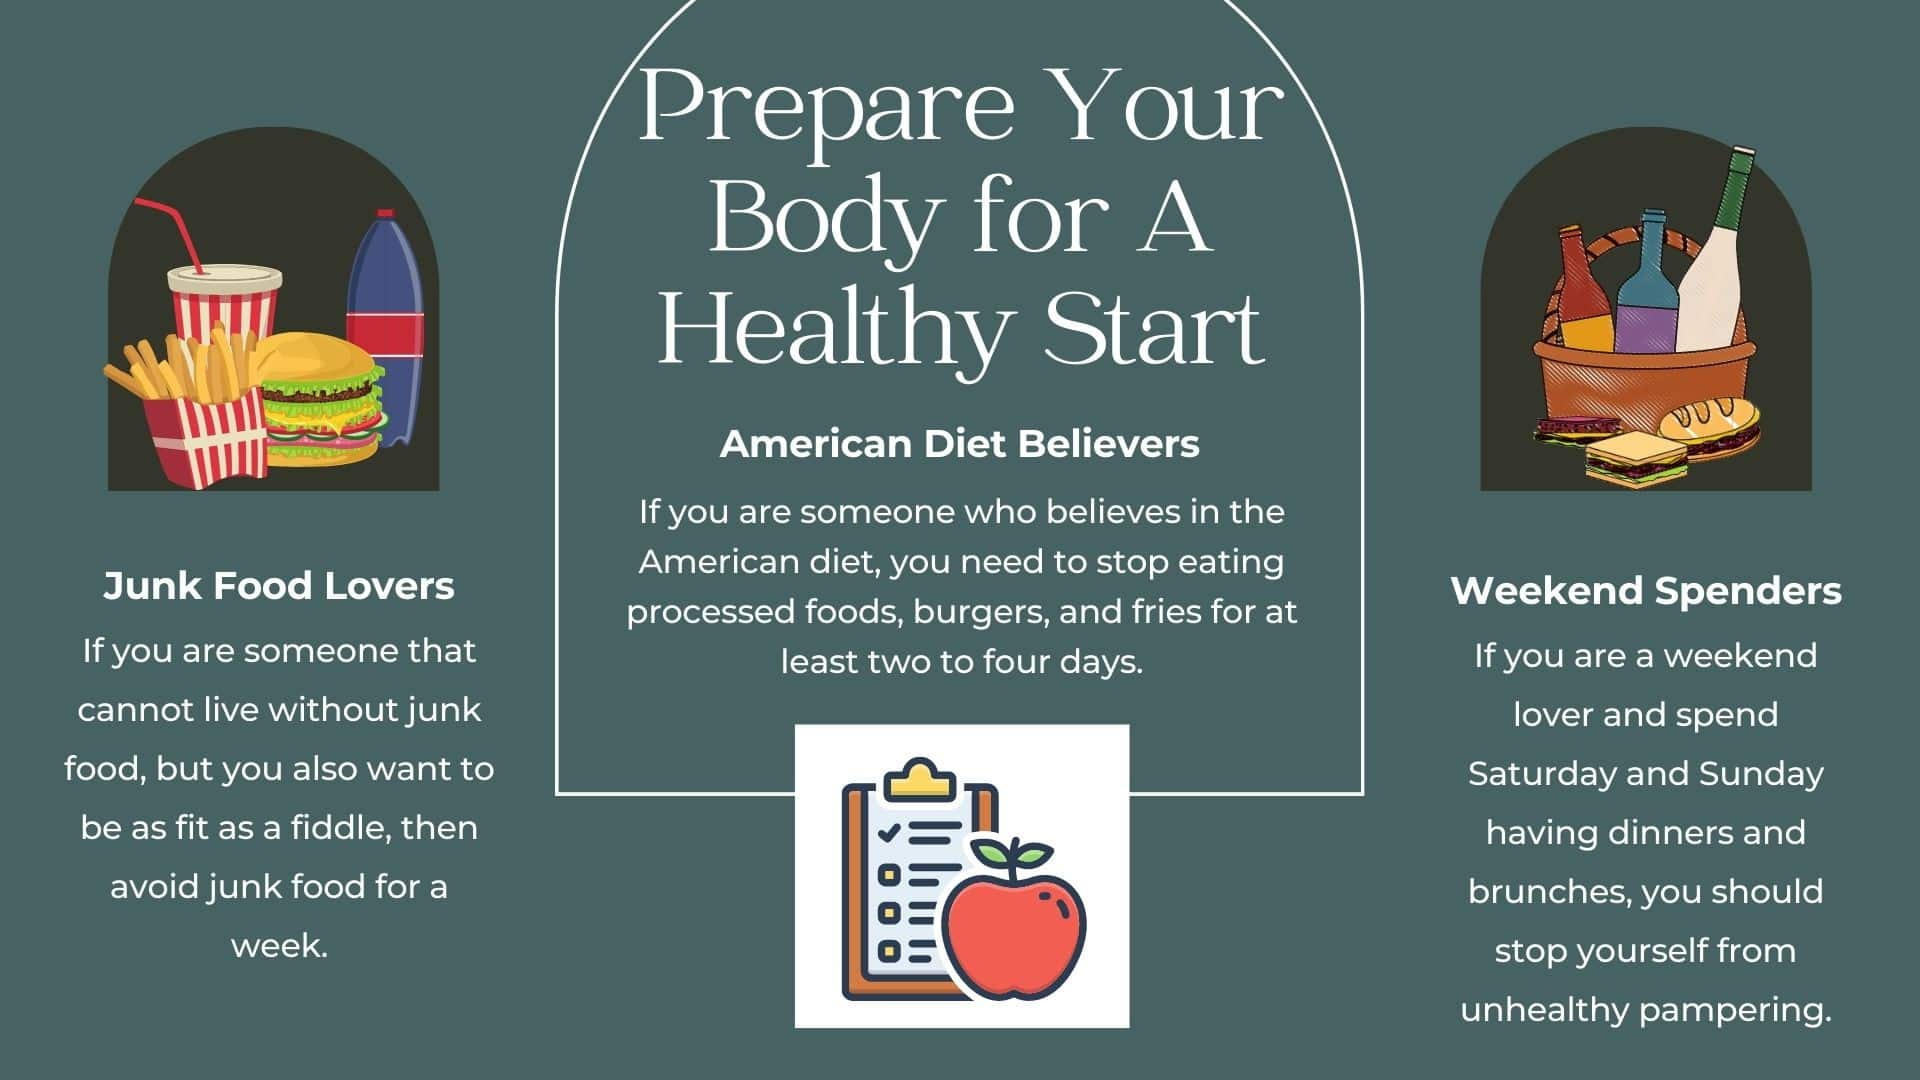 Prepare Your Body for A Healthy Start